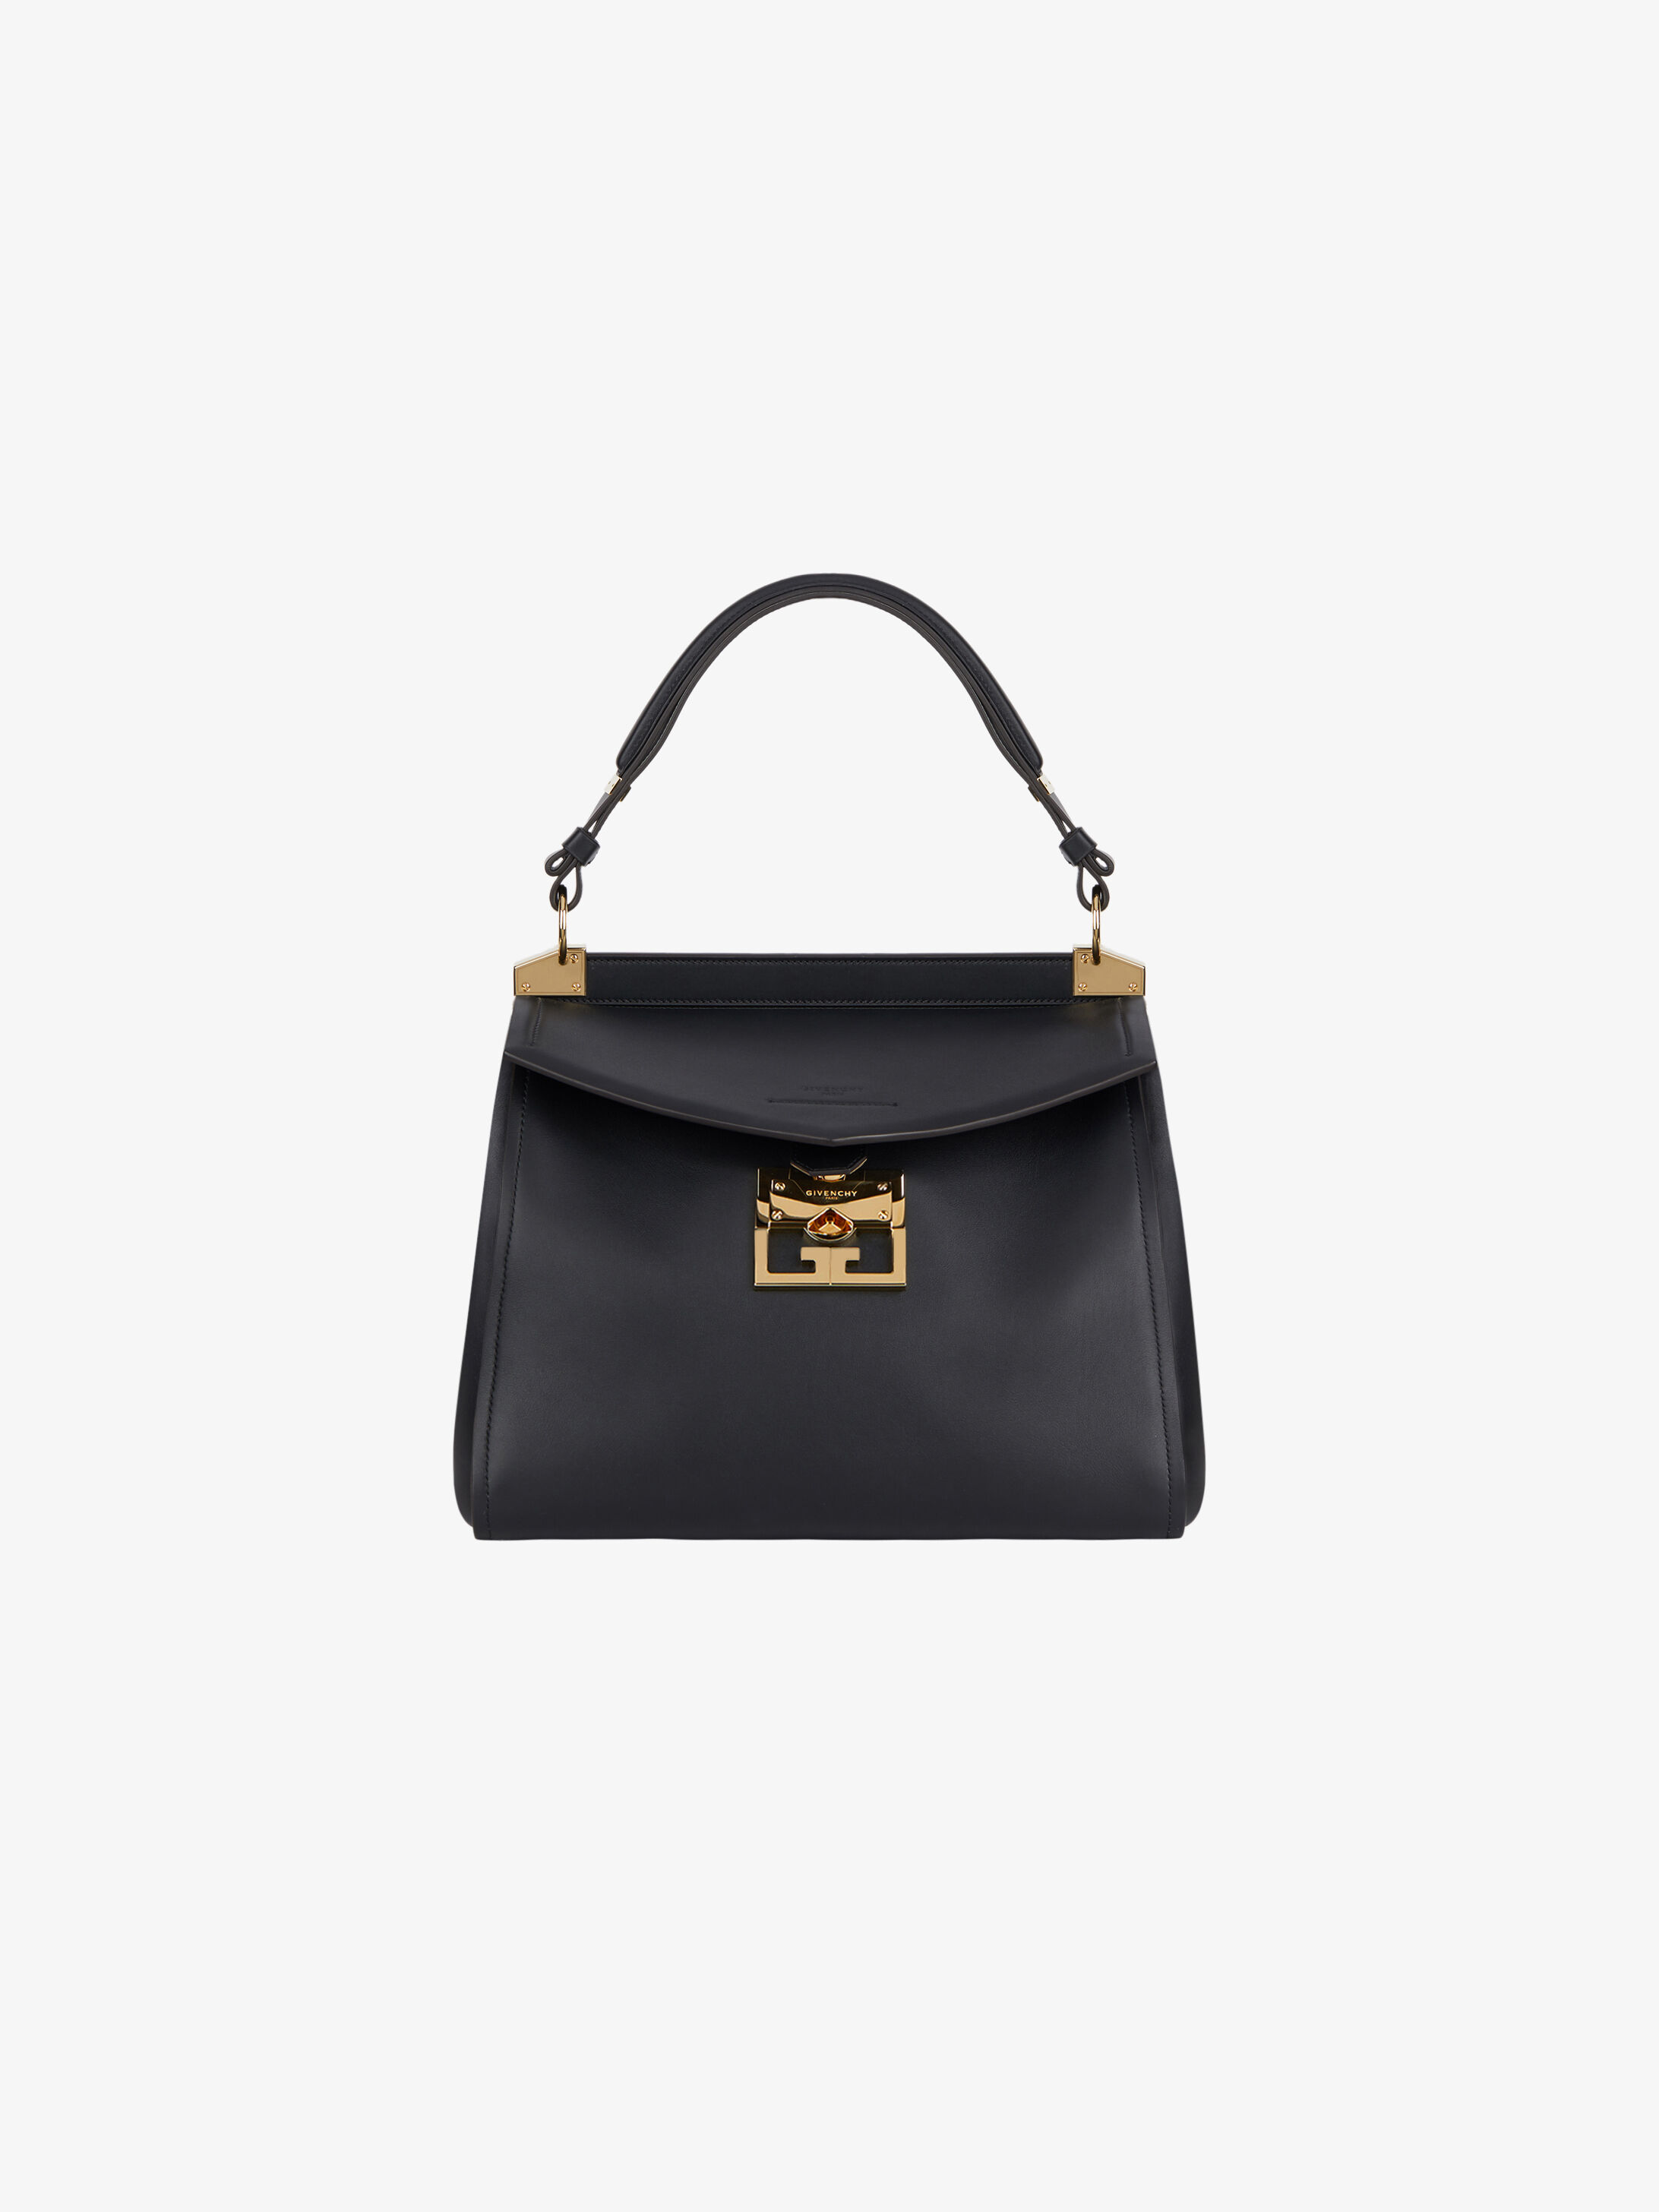 189c84bb5f95 Women's Handbags collection by Givenchy. | GIVENCHY Paris